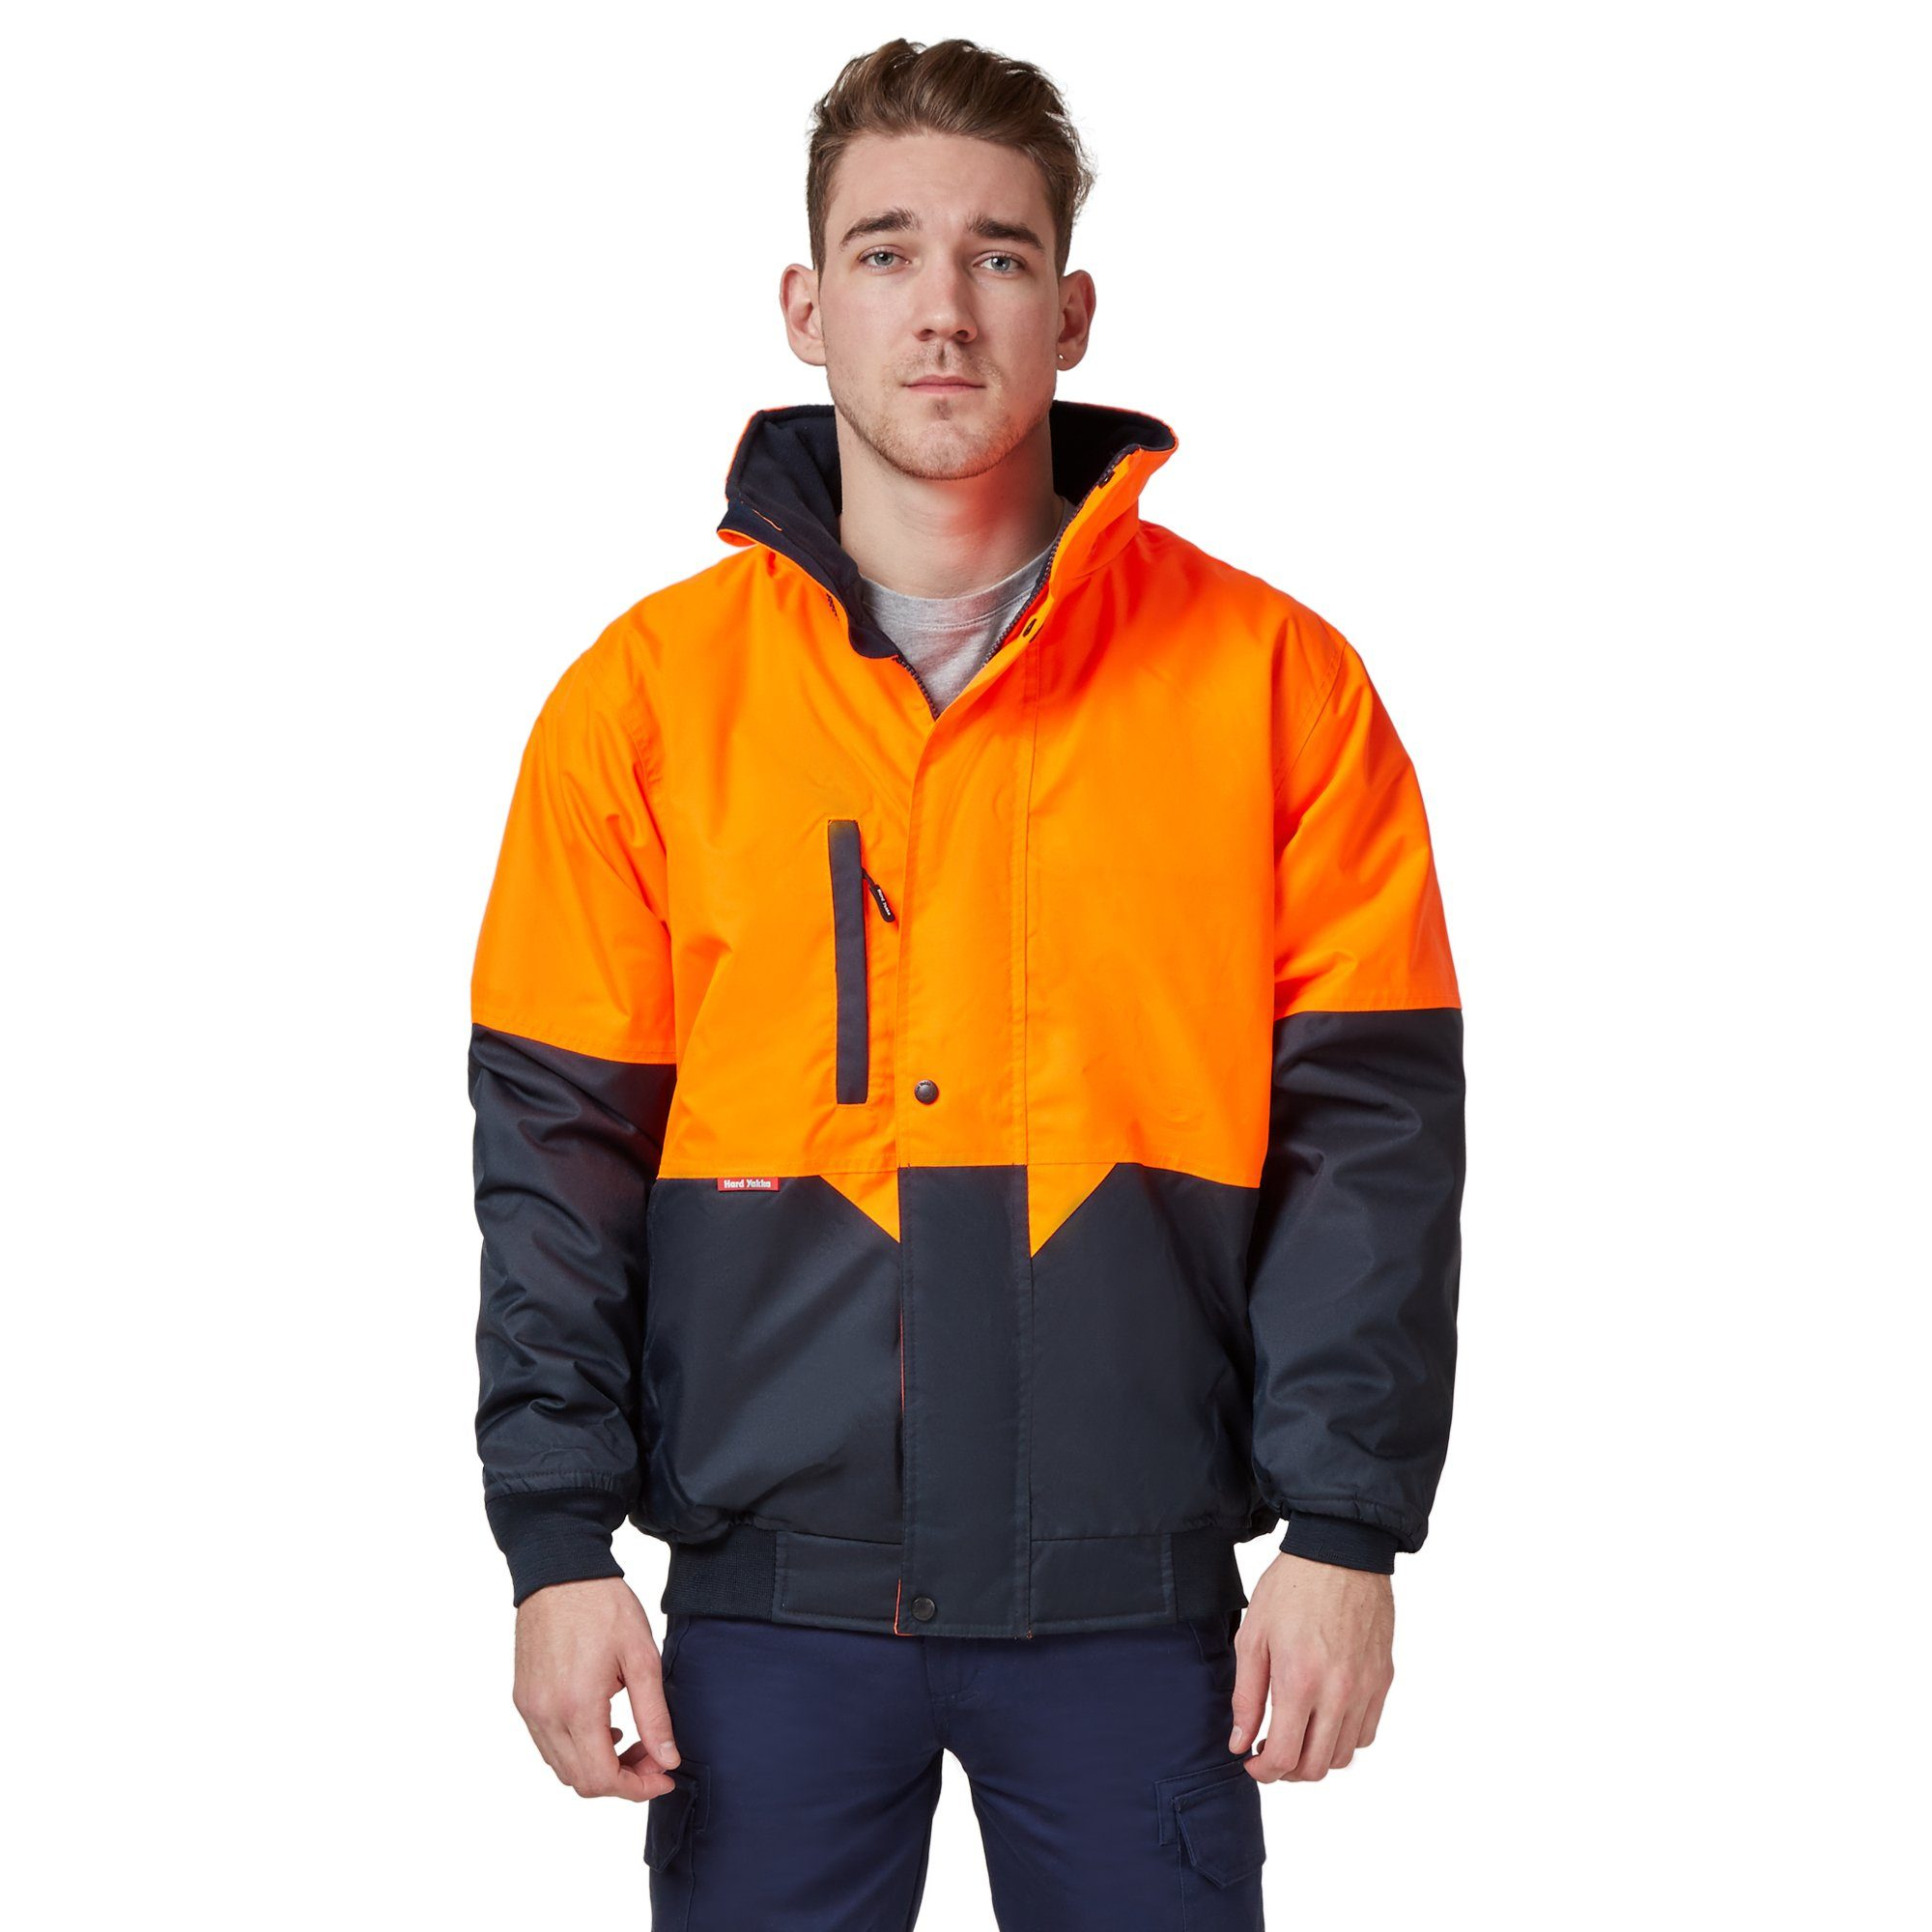 Hard Yakka Two Tone Quilted Pilot Jacket - Orange/Navy Workwear Isbister & Co Wholesale